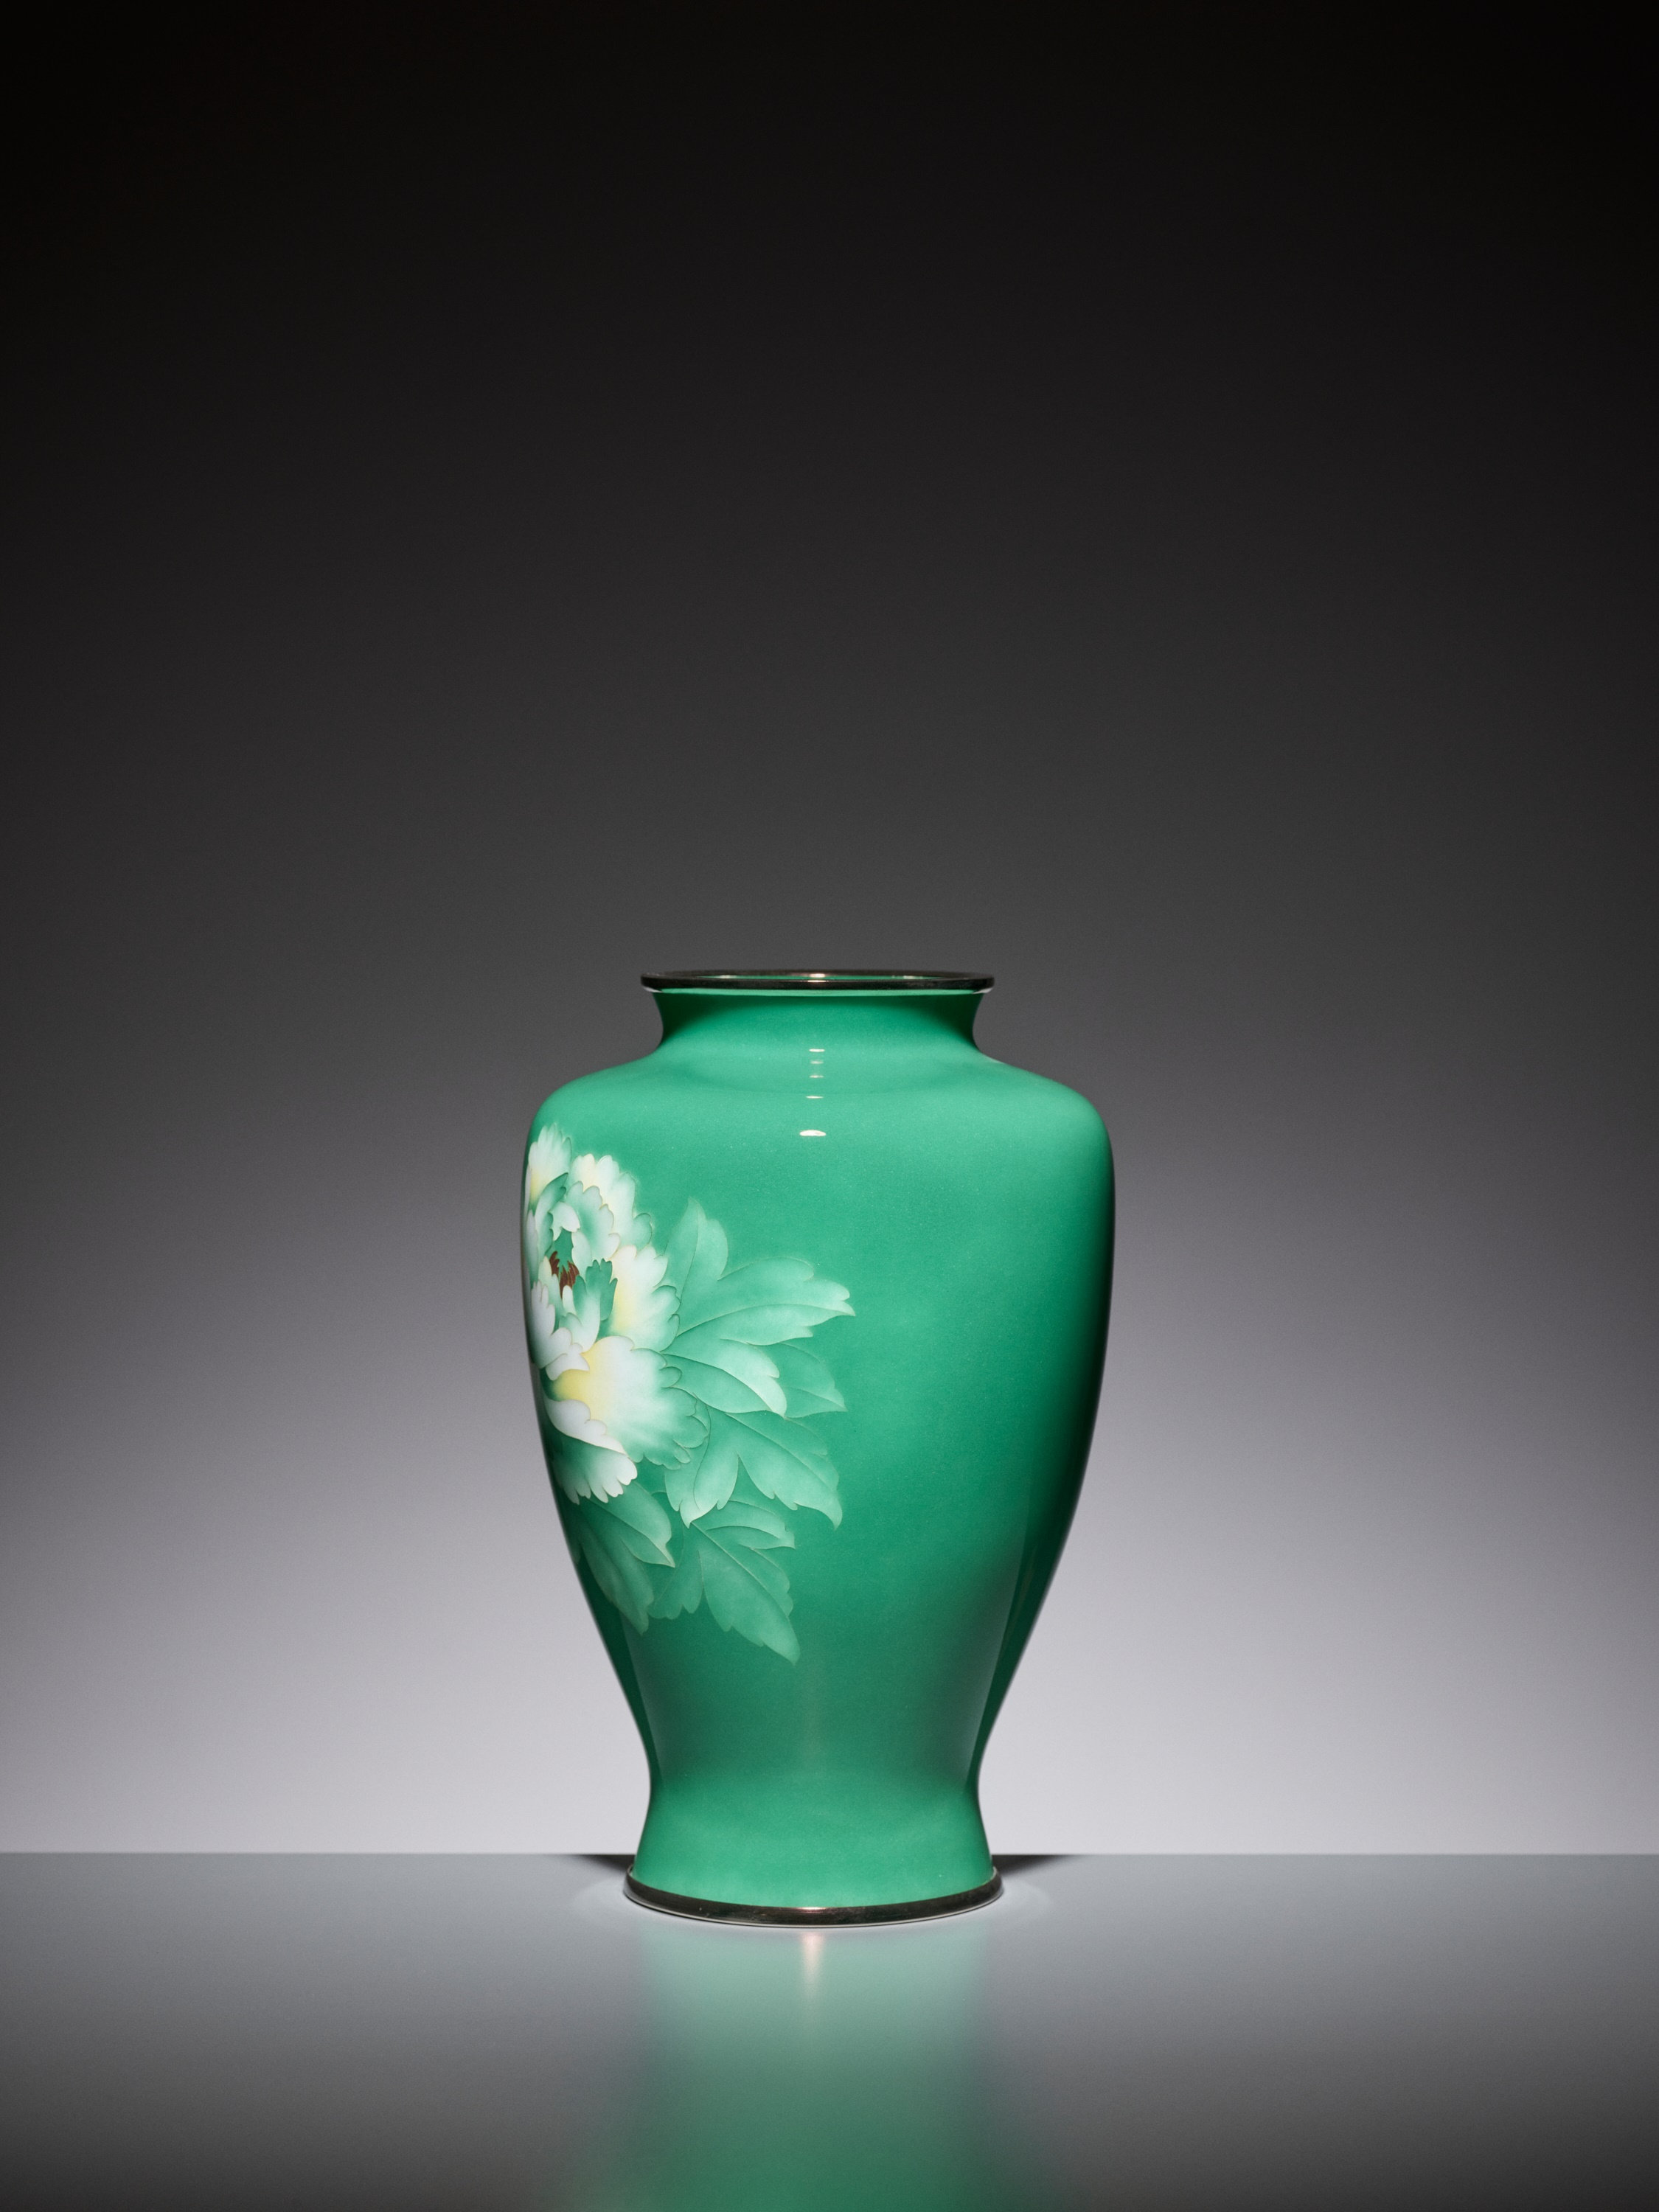 AN EMERALD GREEN CLOISONNE ENAMEL VASE WITH PEONY, ATTRIBUTED TO THE WORKSHOP OF ANDO JUBEI - Image 2 of 6